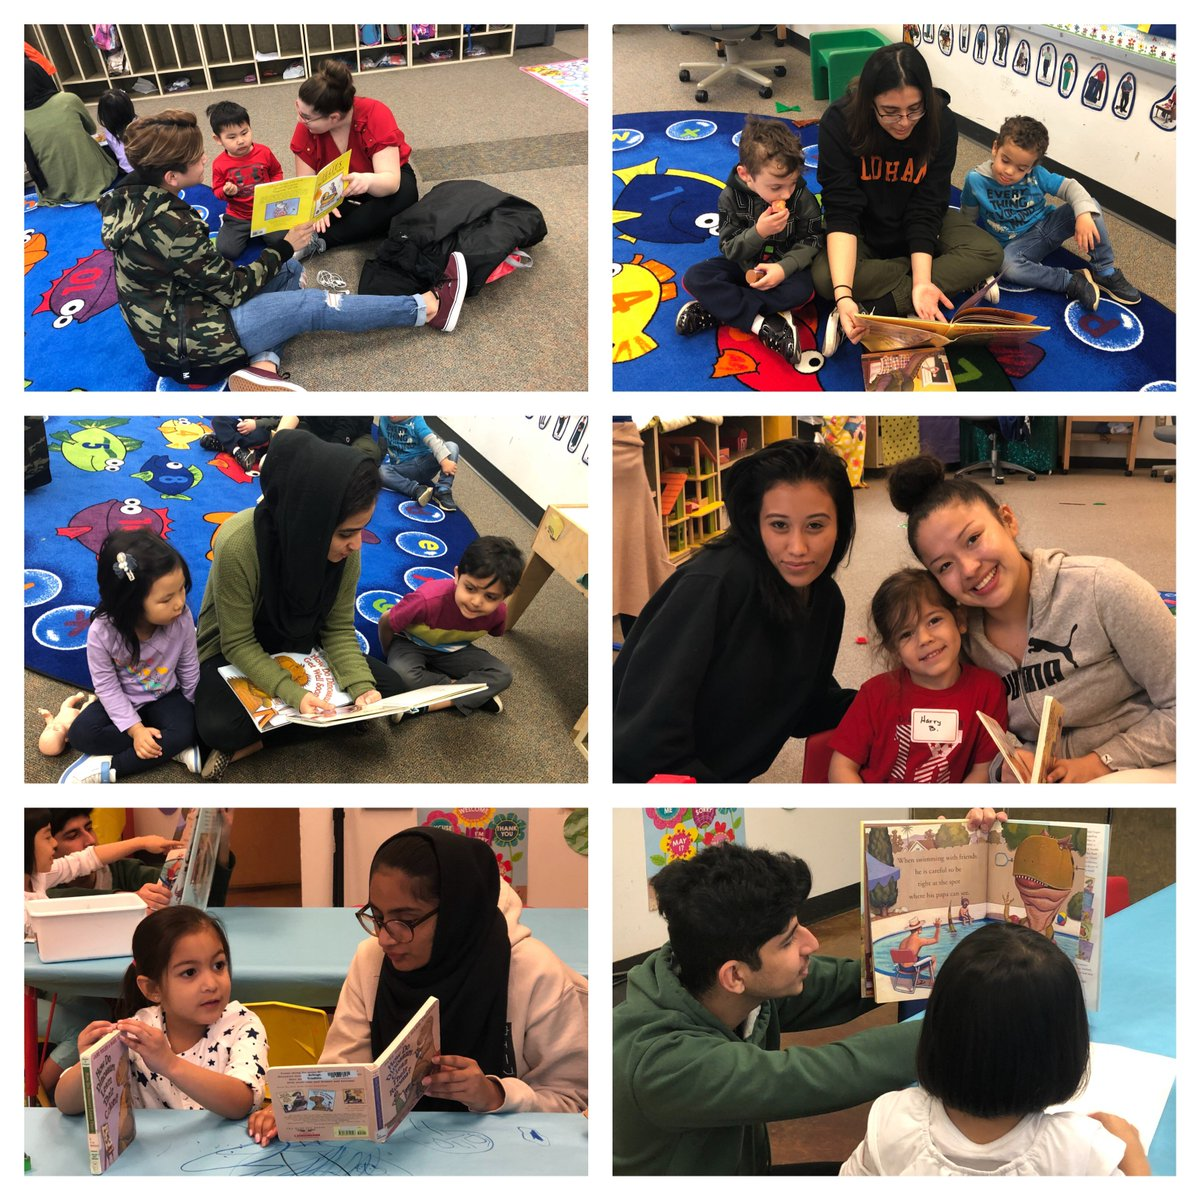 Our monthly visit to the preschoolers! Always lots of FUN! <a target='_blank' href='https://t.co/fOdEt8RIkR'>https://t.co/fOdEt8RIkR</a>